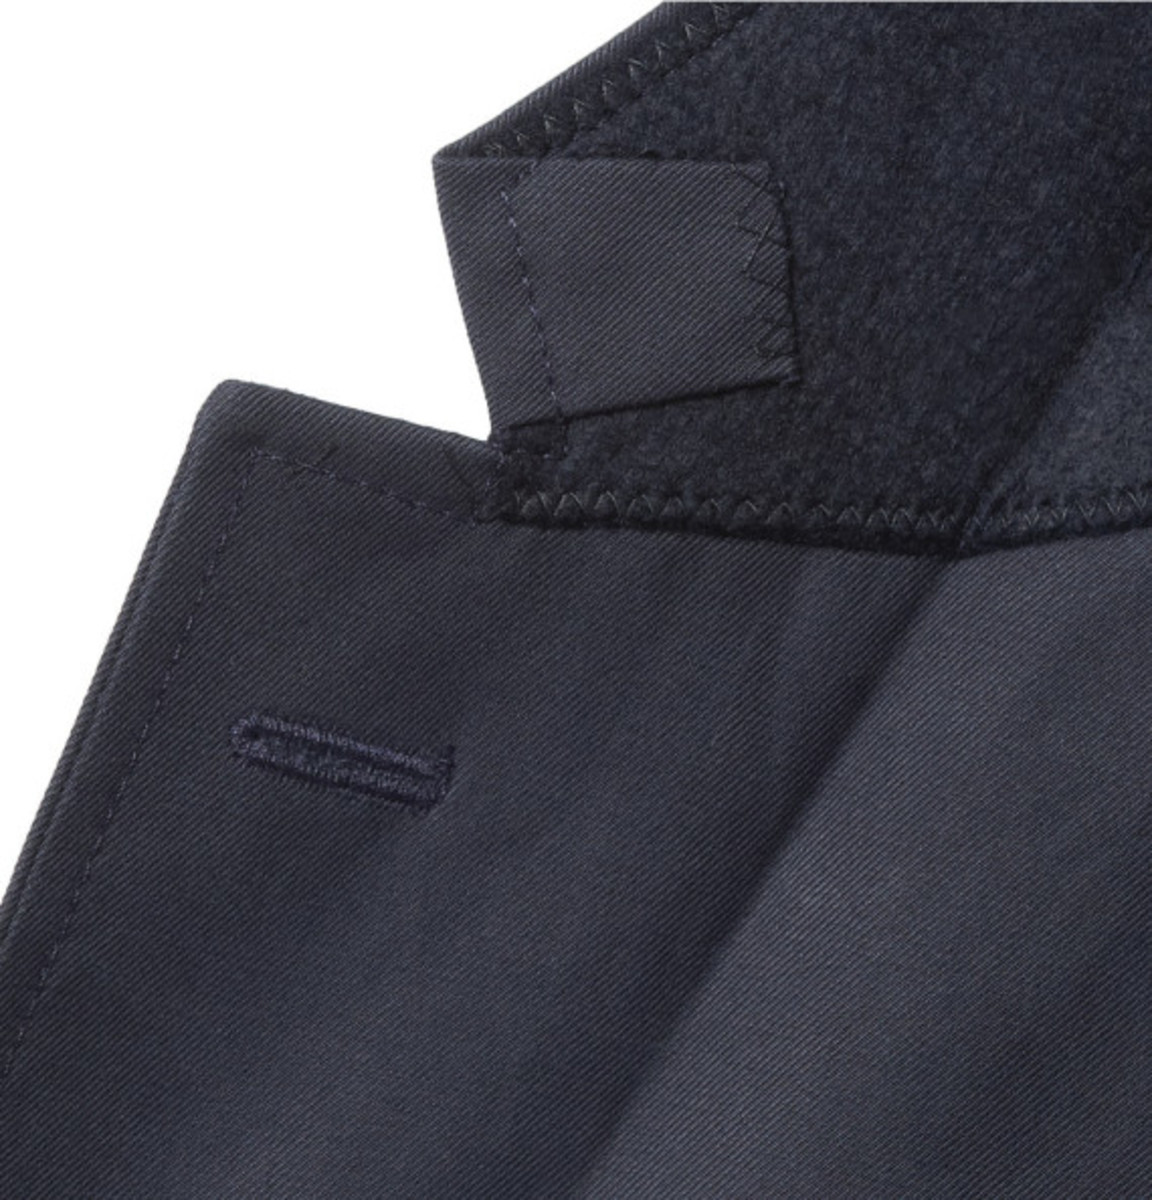 raf-simons-mr-porter-exclusive-slim-fit-cotton-twill-blazer-04